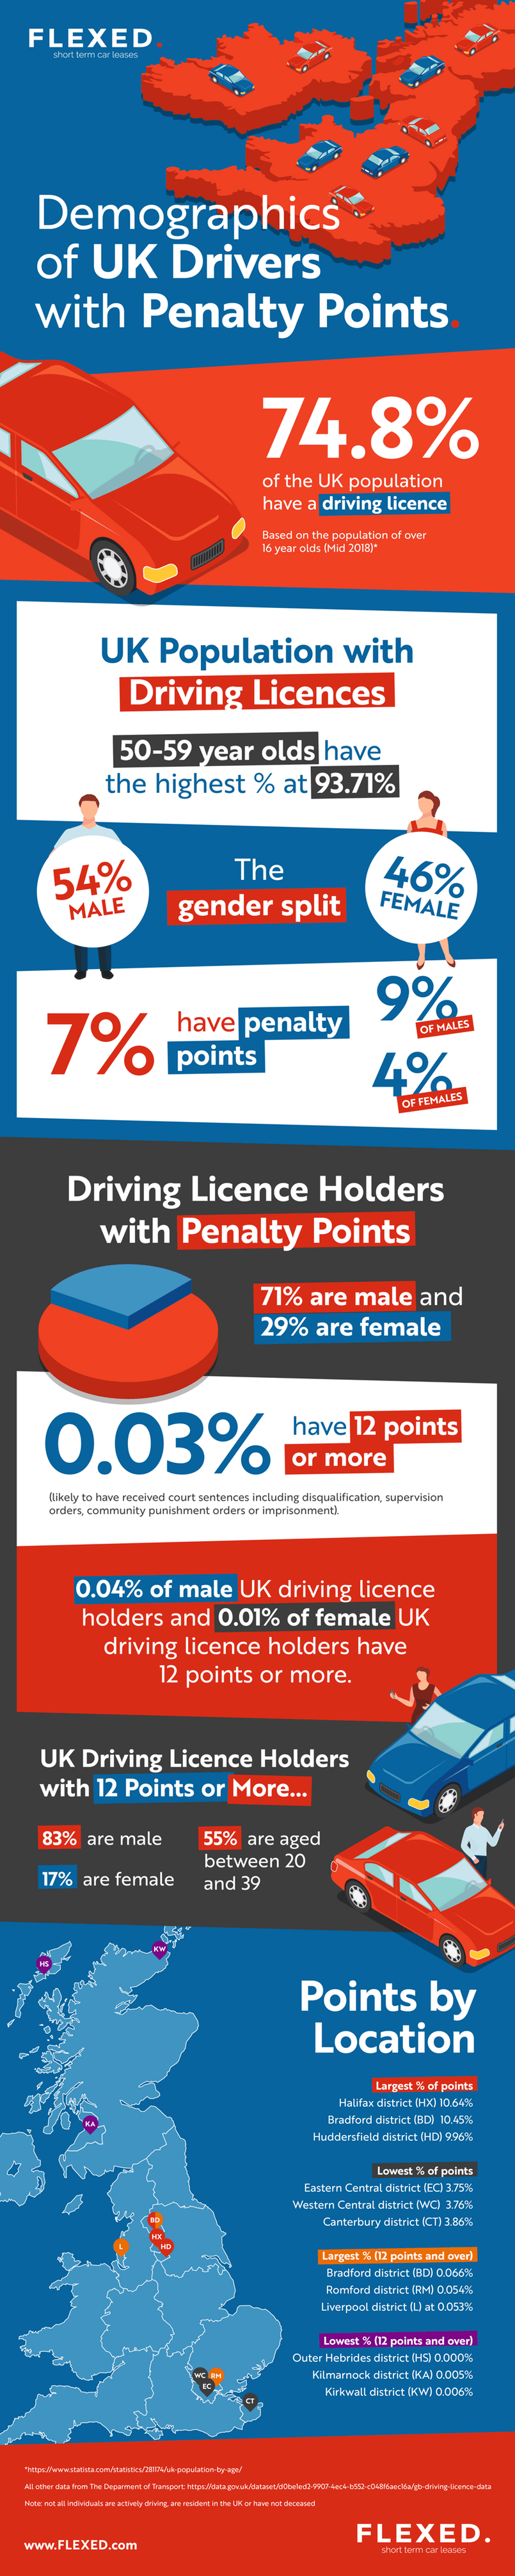 Driving penalty points infographic